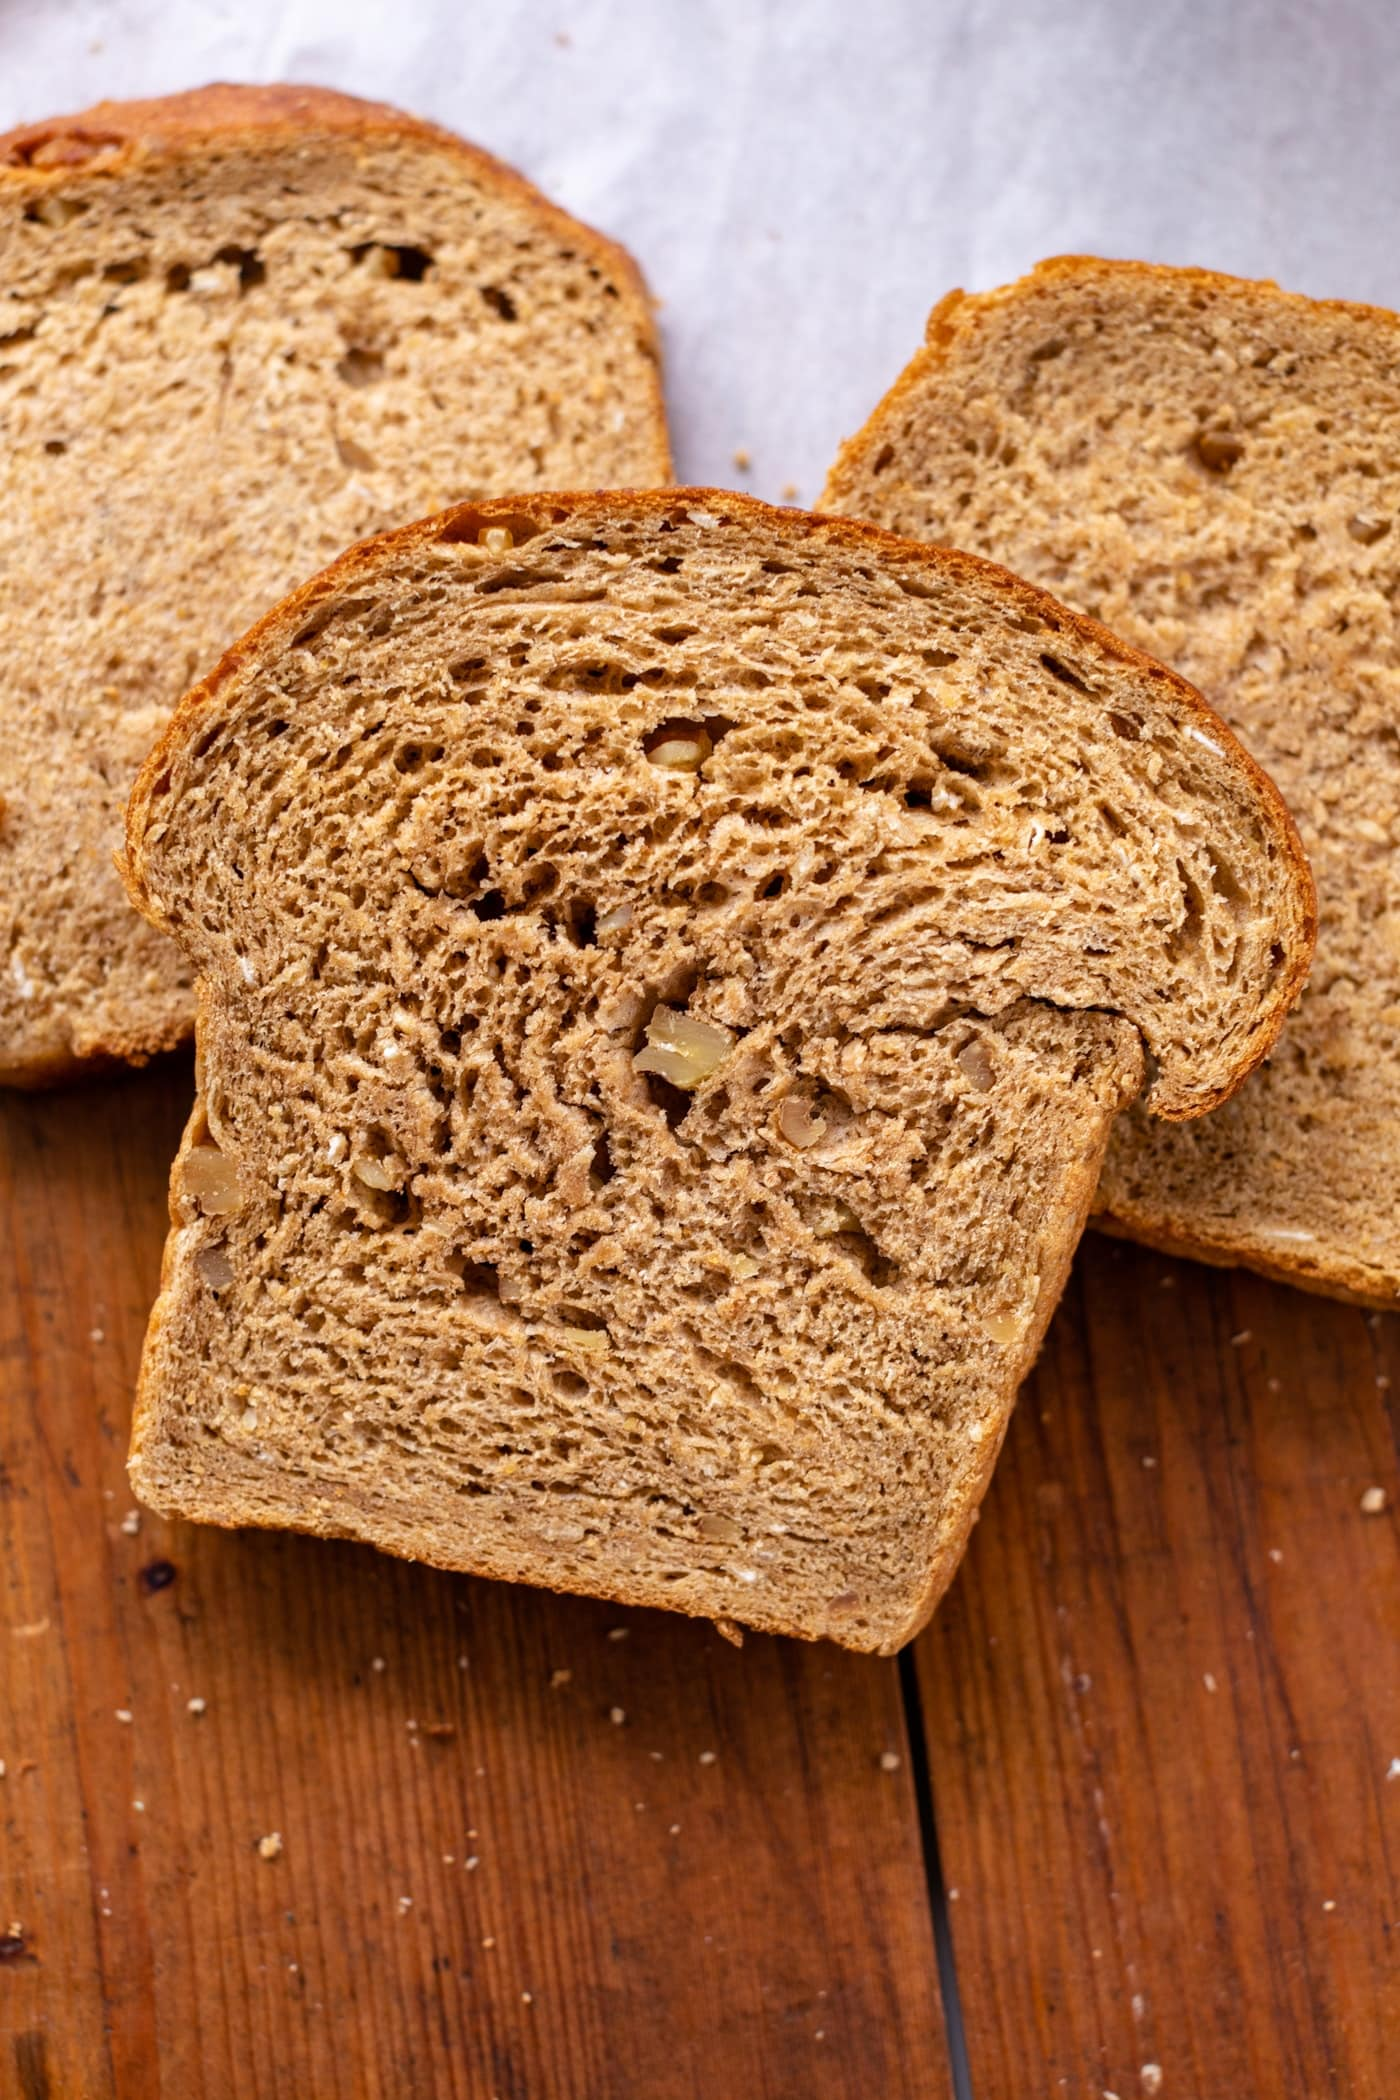 Hearty grain bread sitting on wood board with white piece of parchment in background along with other slices of bread